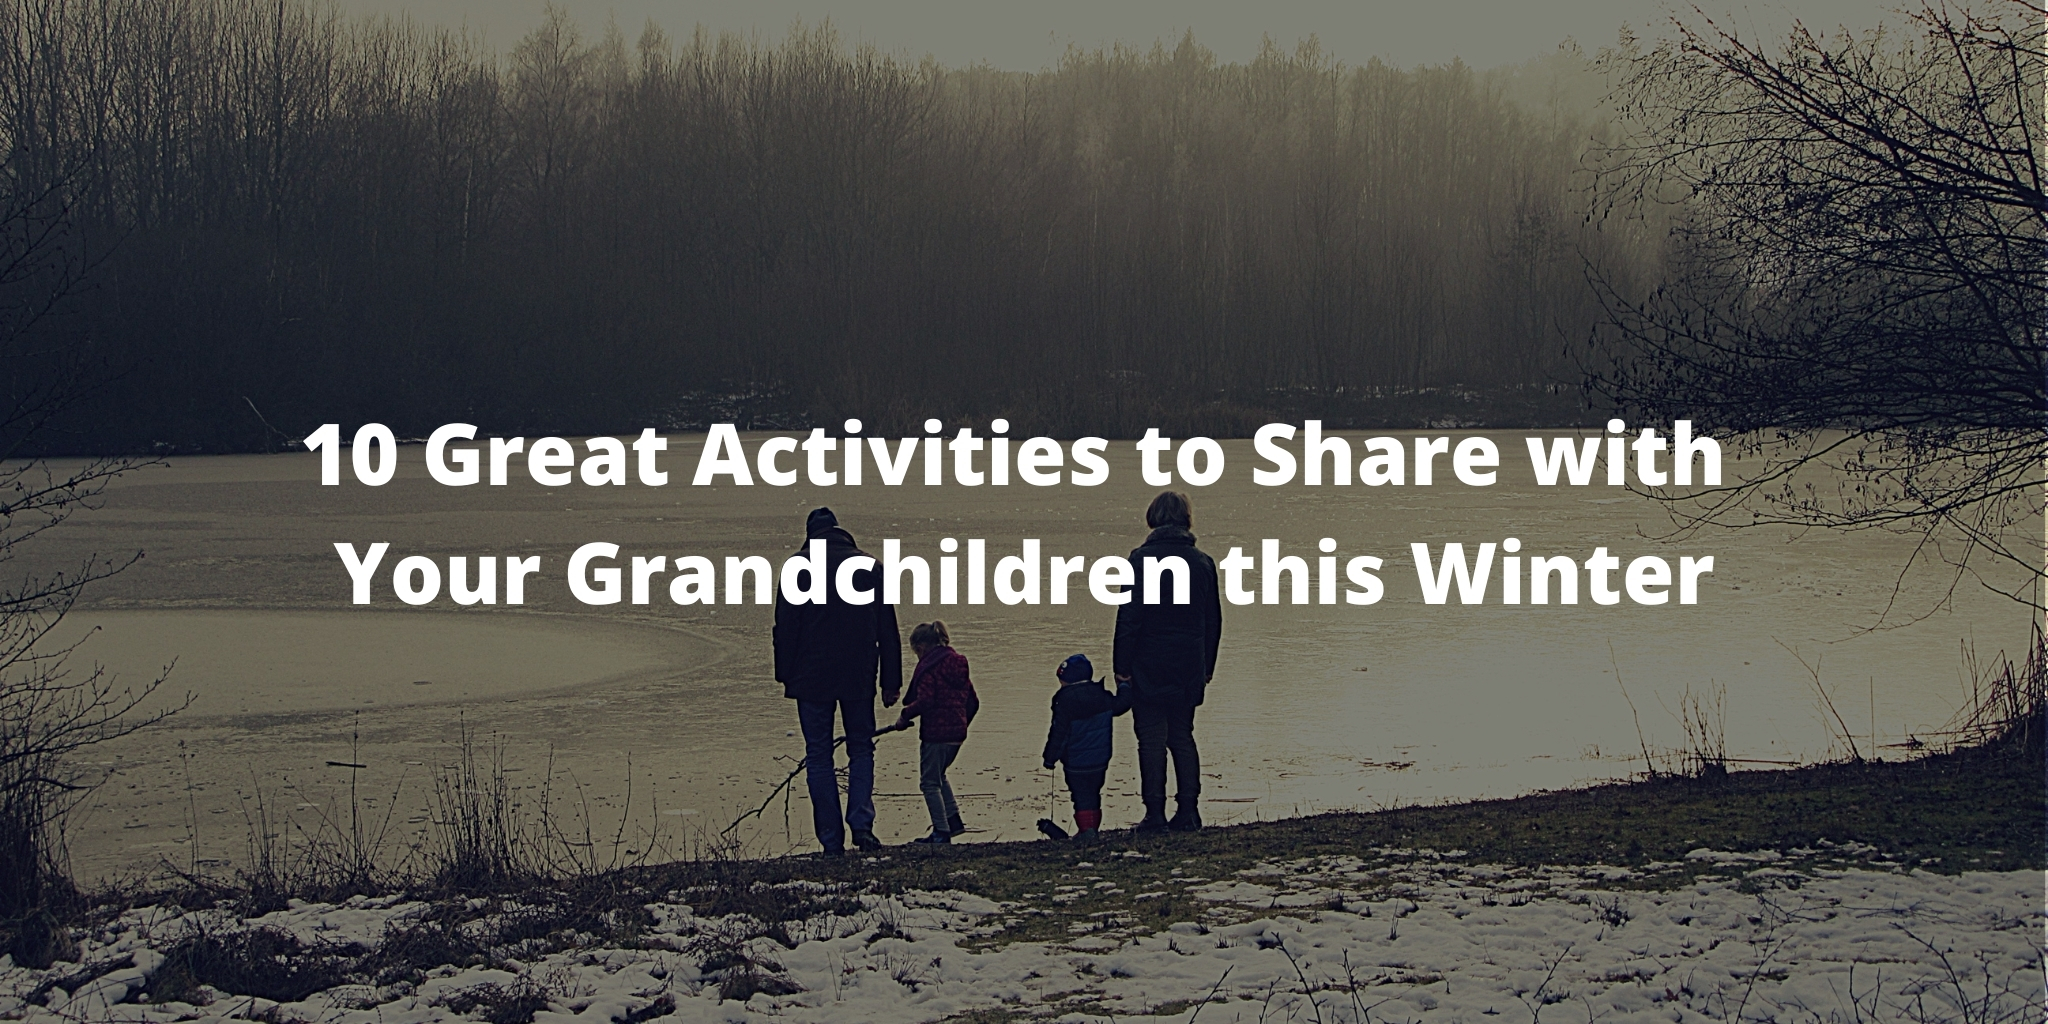 10 Great Activities to Share with Your Grandchildren this Winter